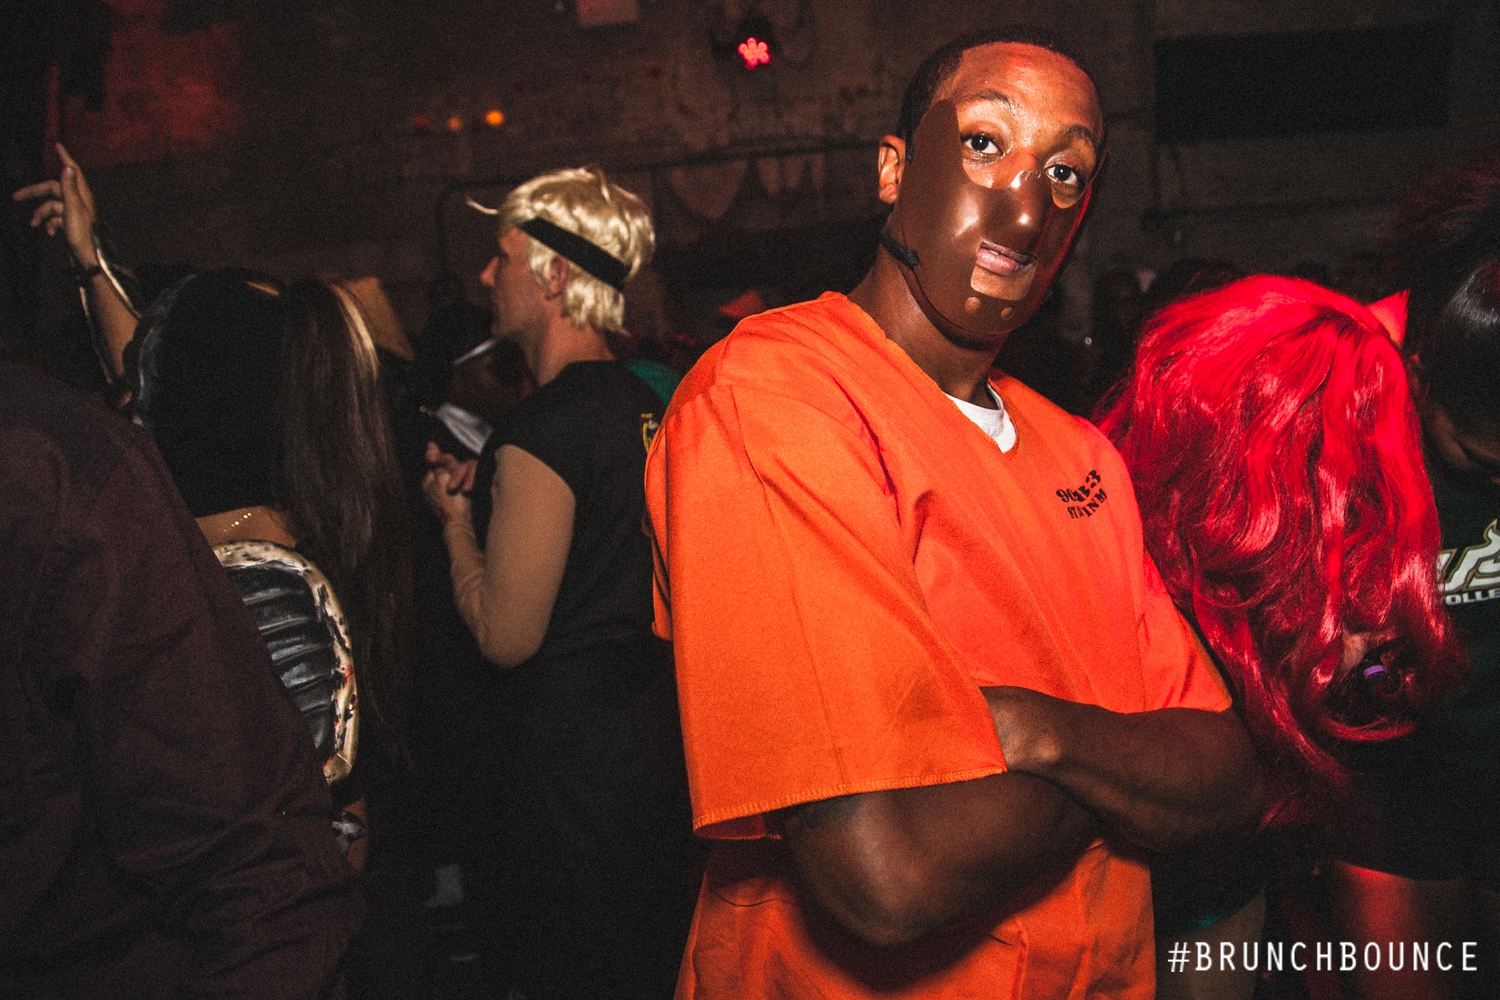 brunch-bounce-x-adidas-originals-halloween-103115_22133985983_o.jpg